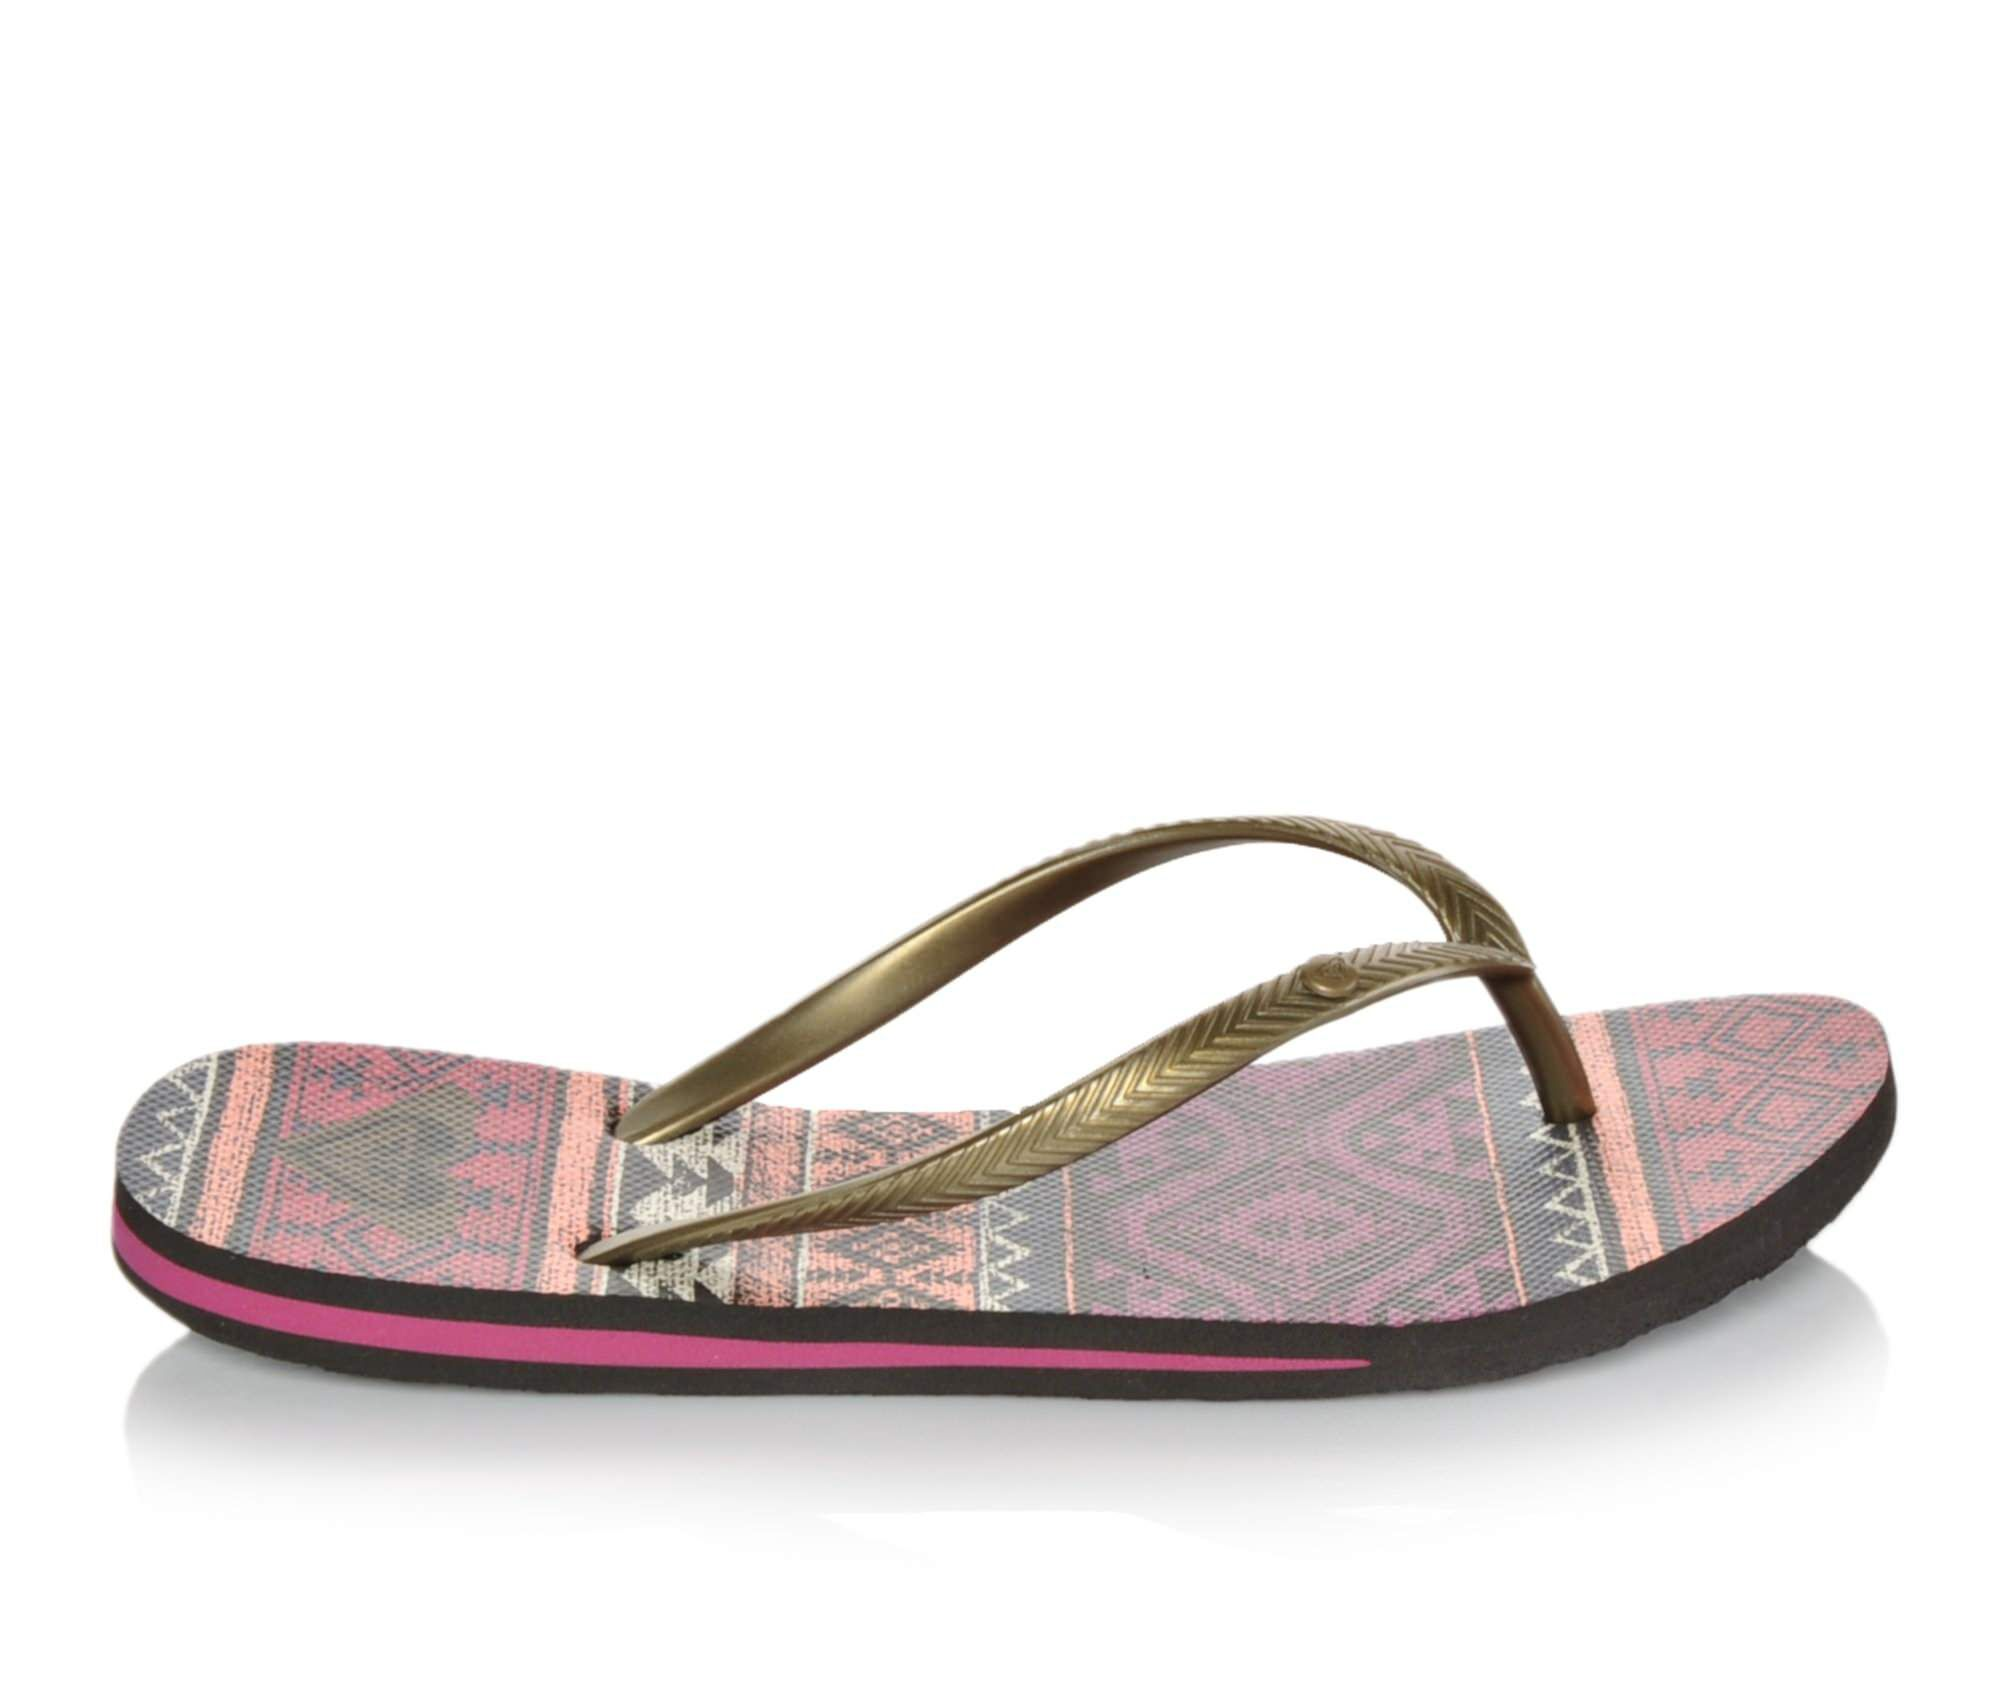 Roxy Shoes Roxy Caribbean Womens Sandals Multicolor